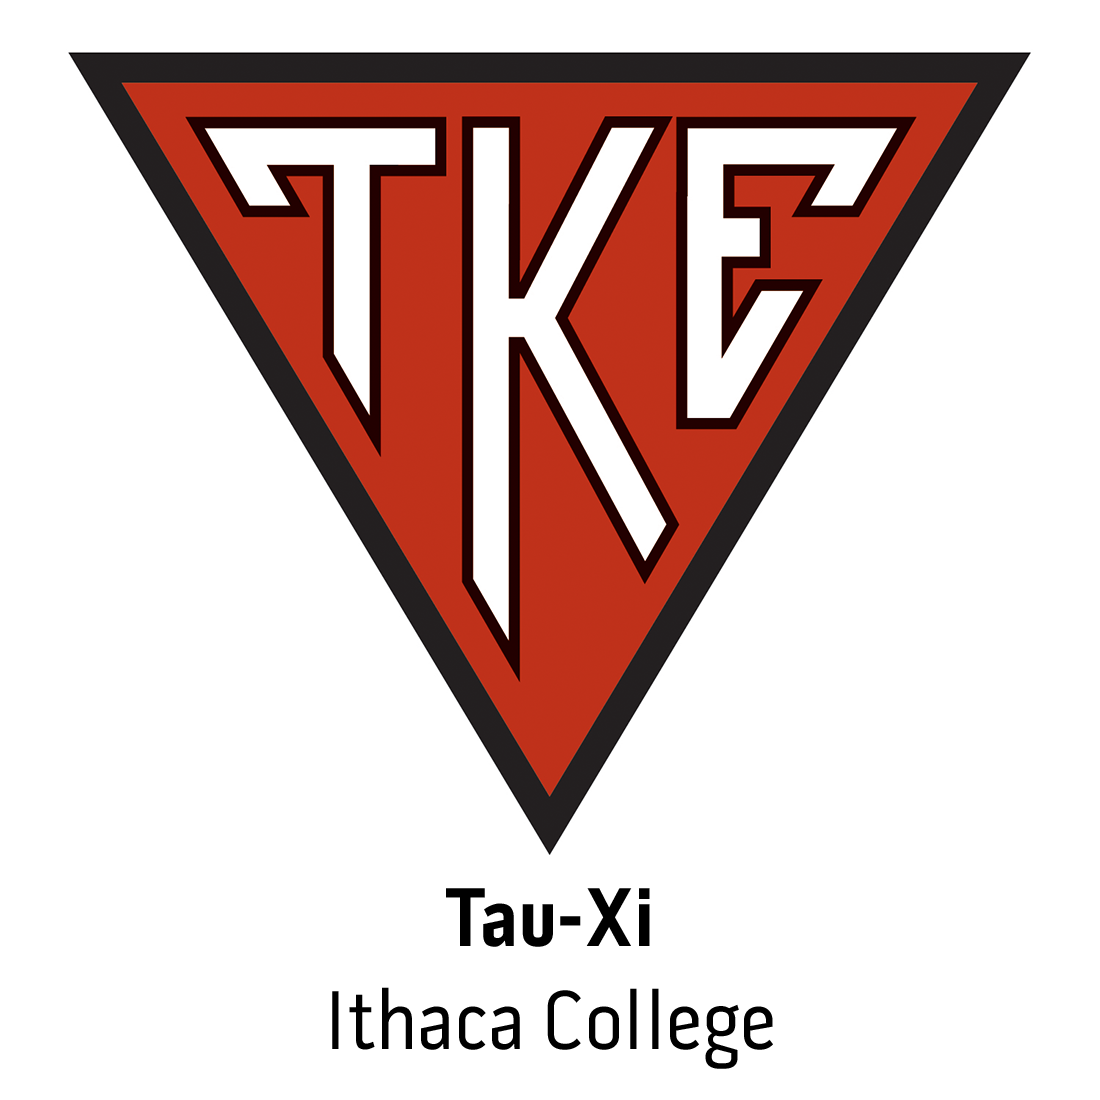 Tau-Xi Chapter at Ithaca College